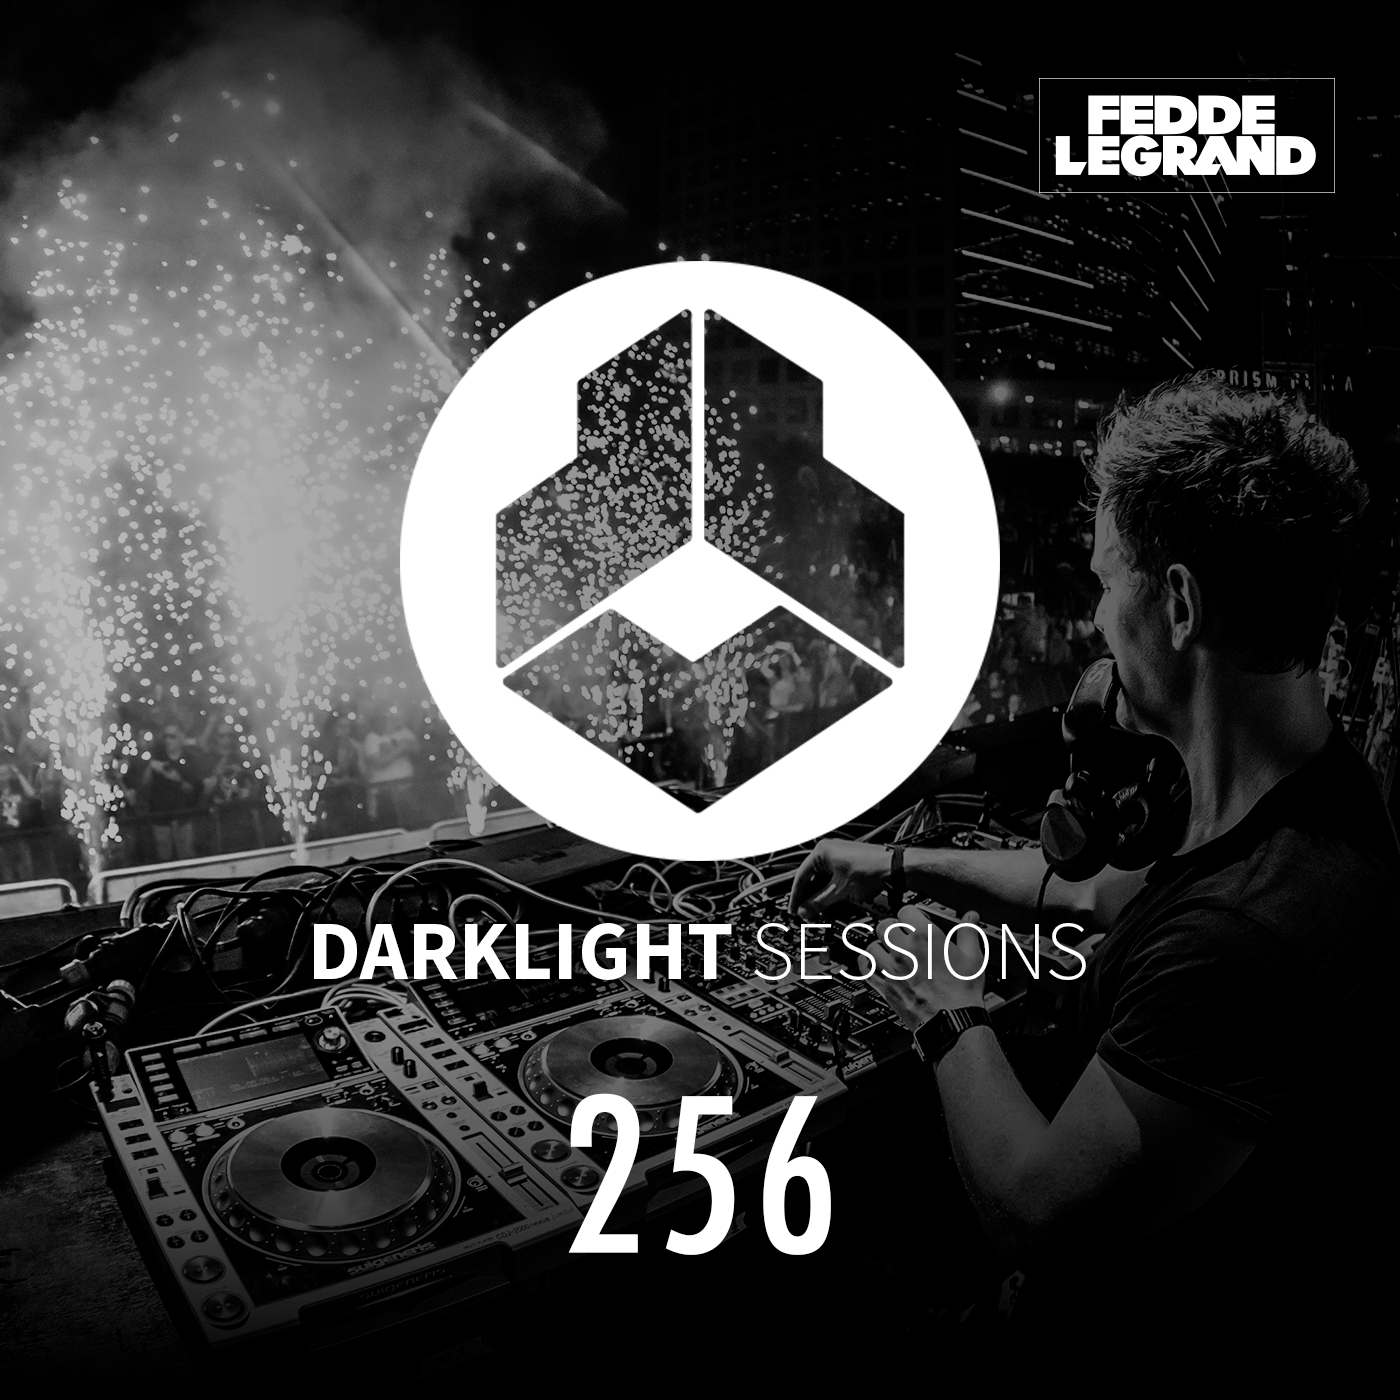 Darklight Sessions 256